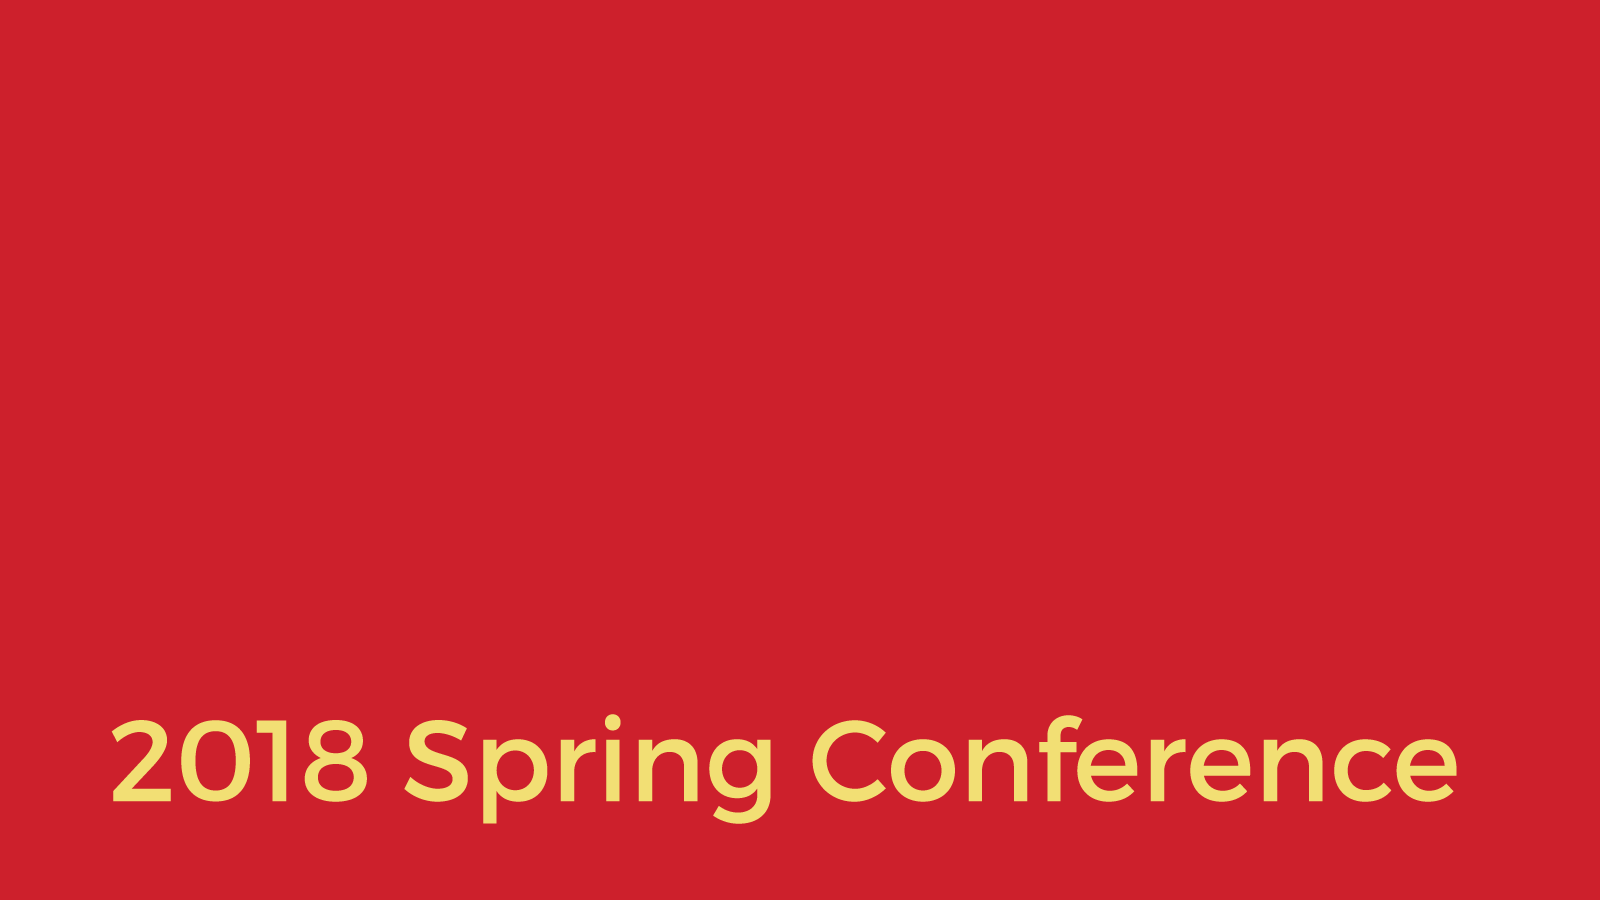 The 2018 Spring Conference: Another Opportunity to Gather, Learn and Laugh